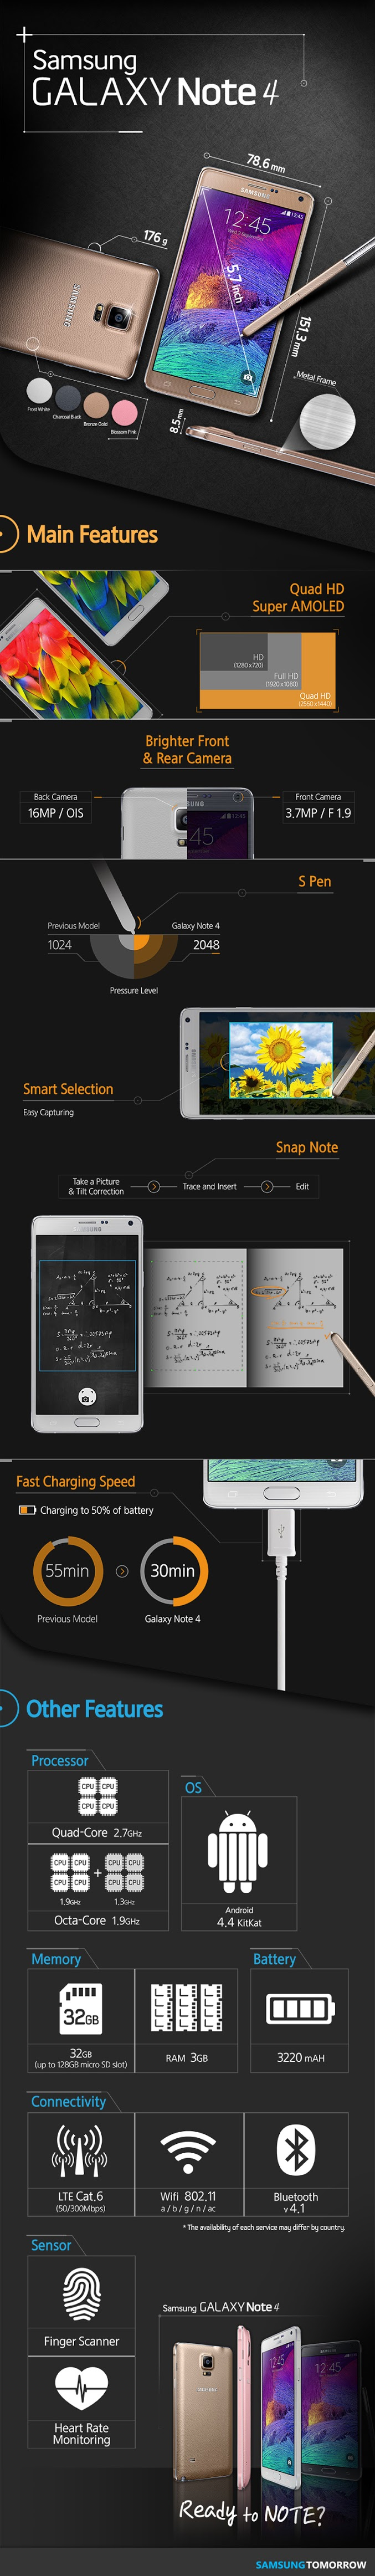 Samsung Galaxy Note 4 infographic flaunts all the new features